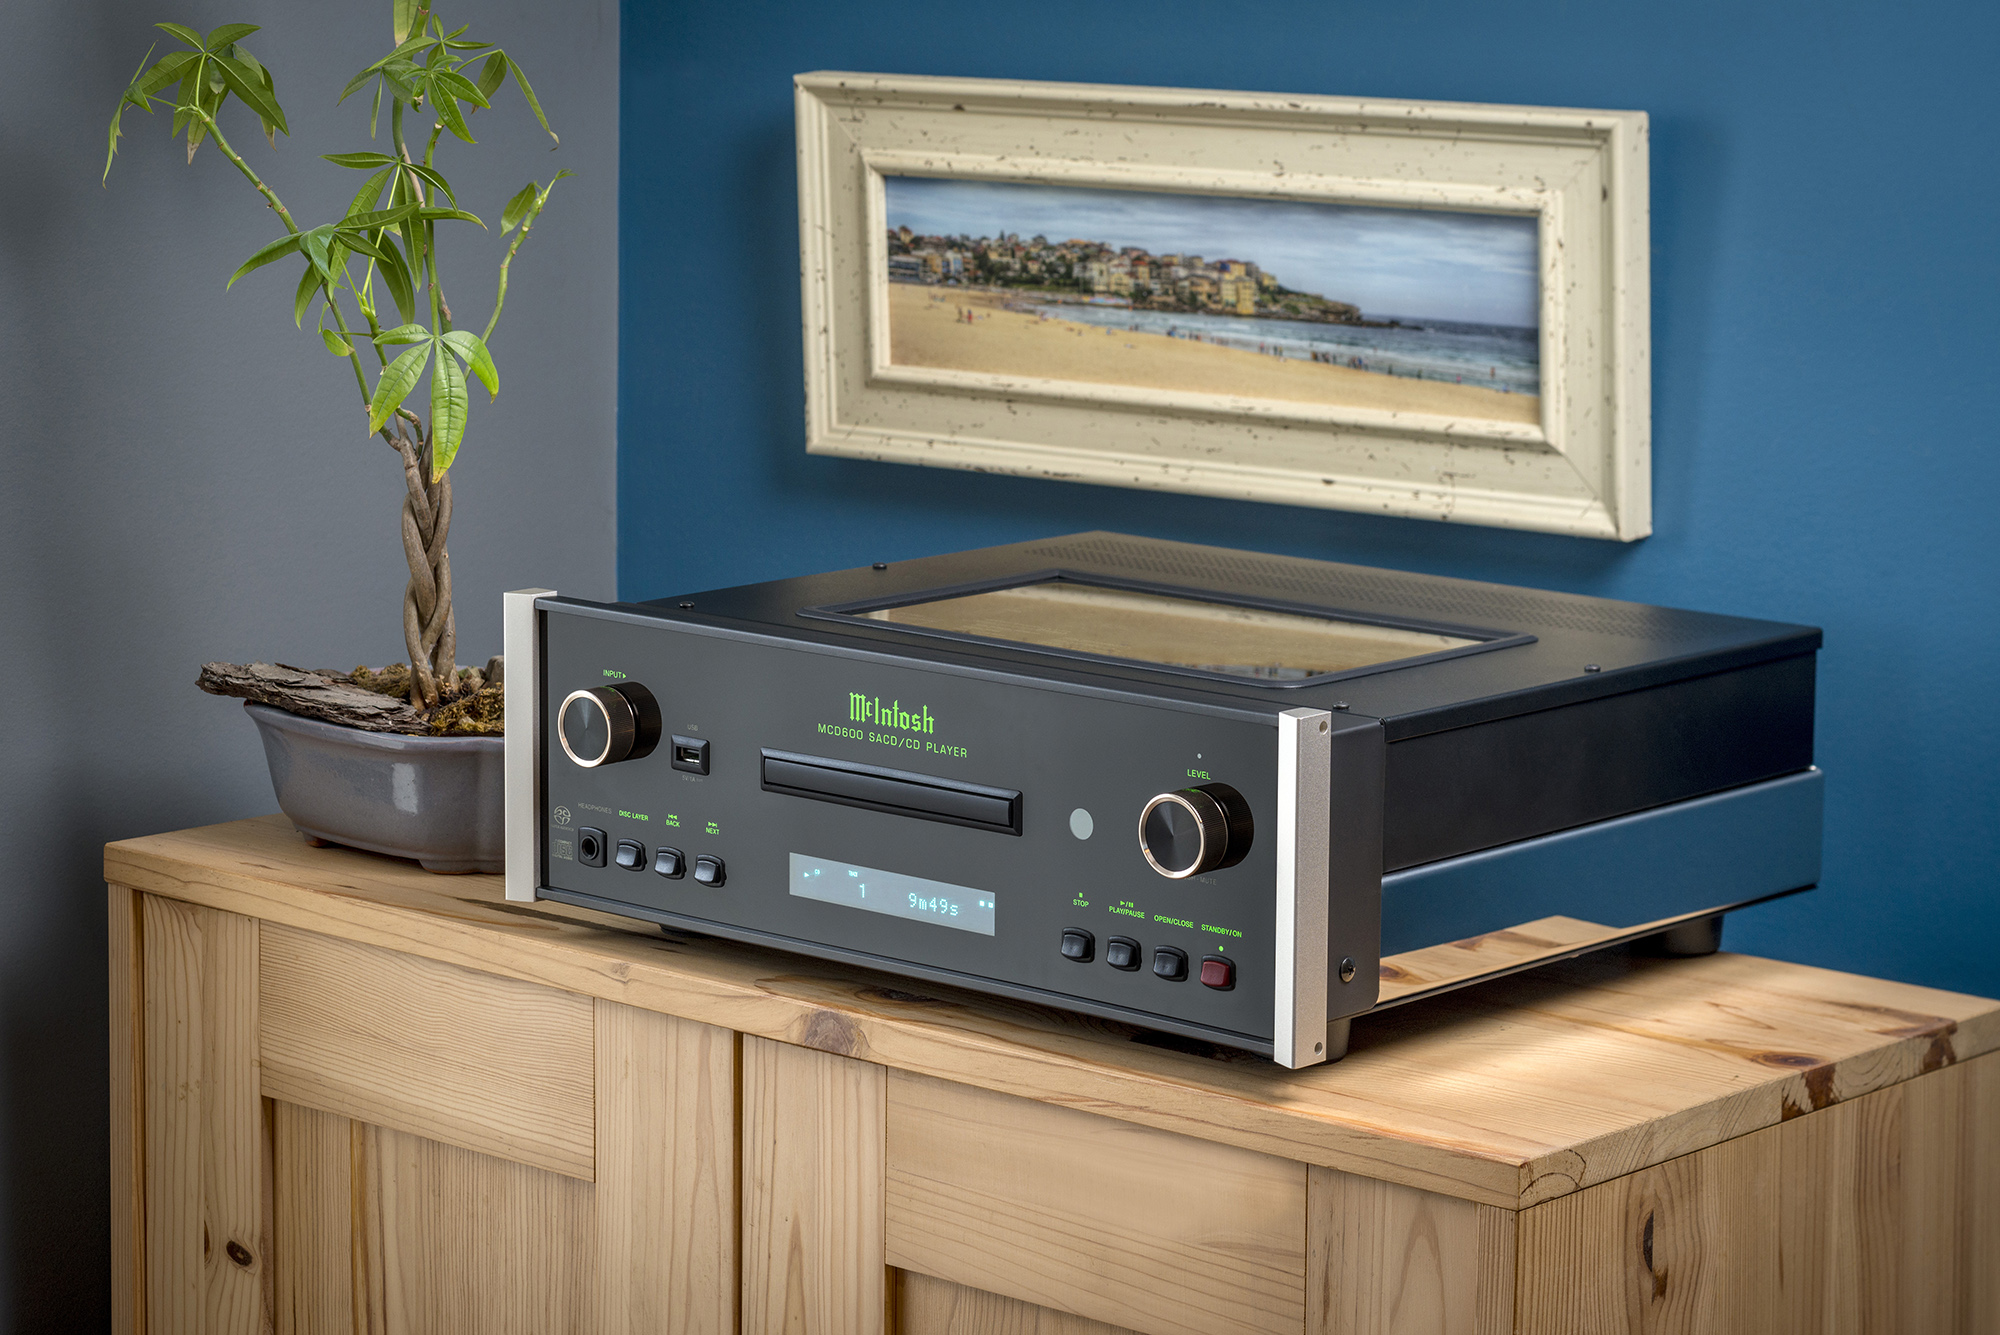 mcintosh-mcd600-anhduyen-audio-6